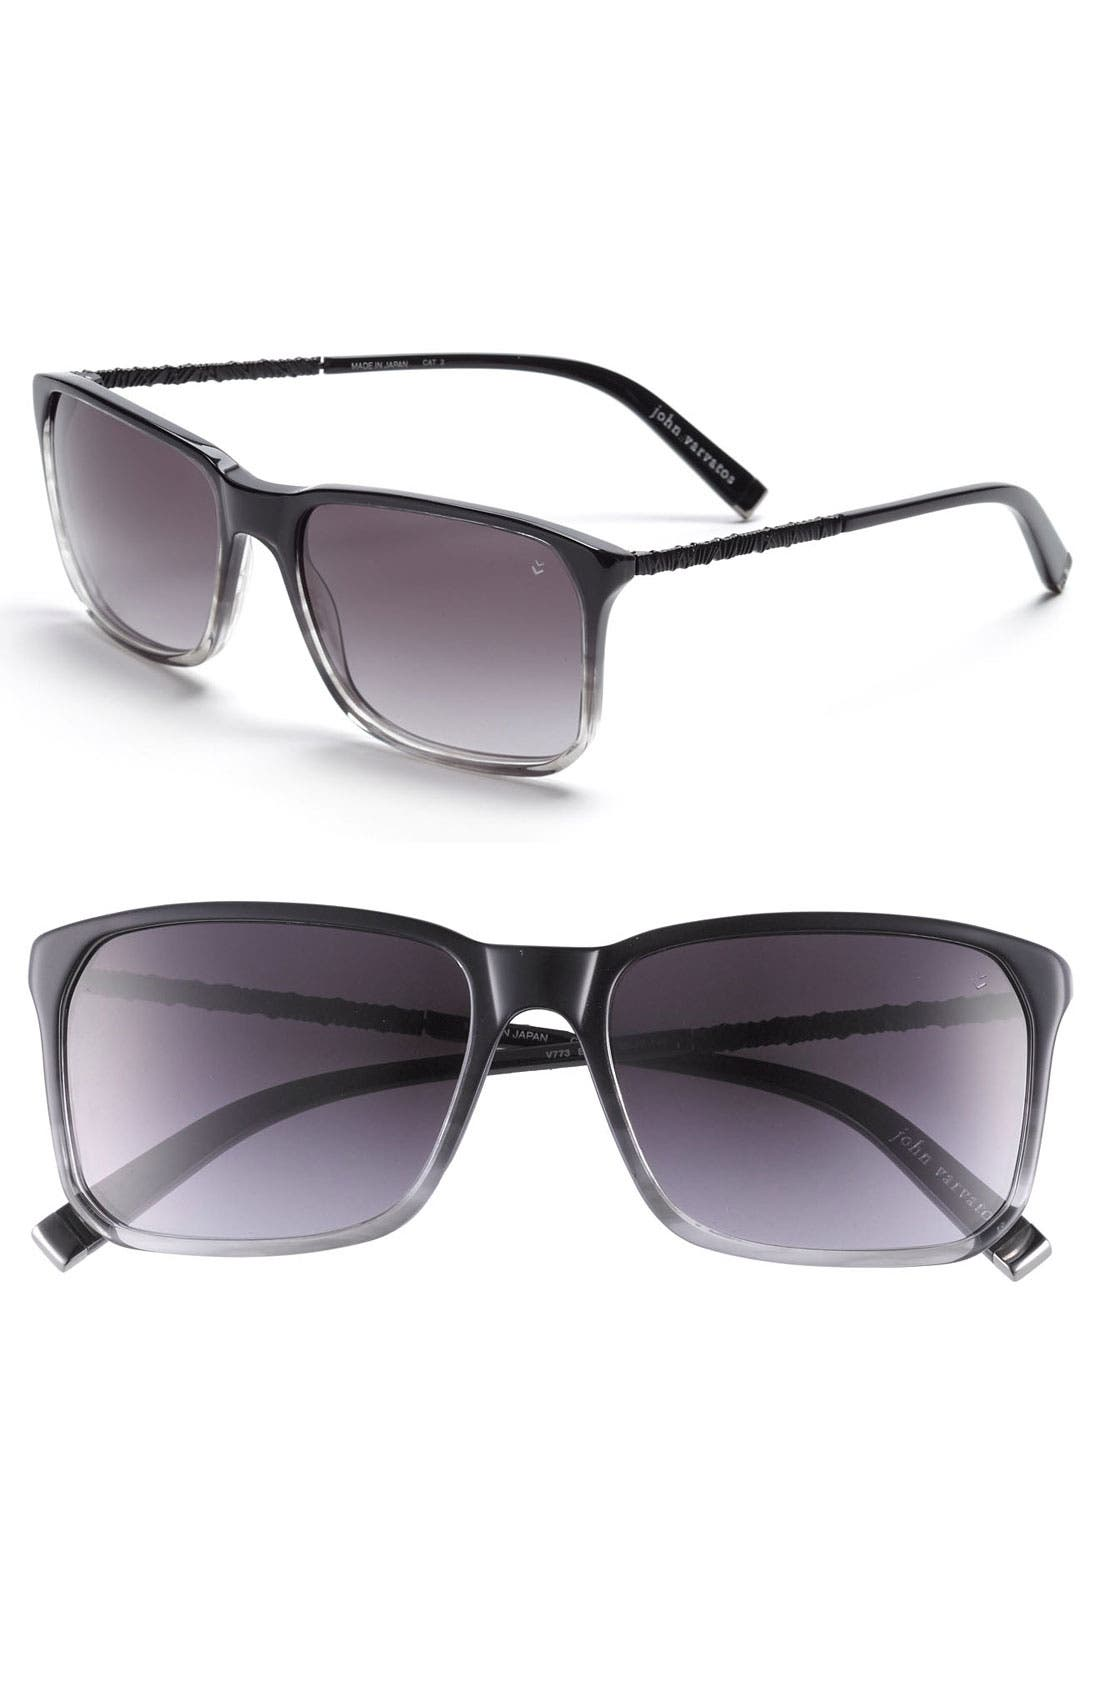 Alternate Image 1 Selected - John Varvatos Collection 56mm Sunglasses